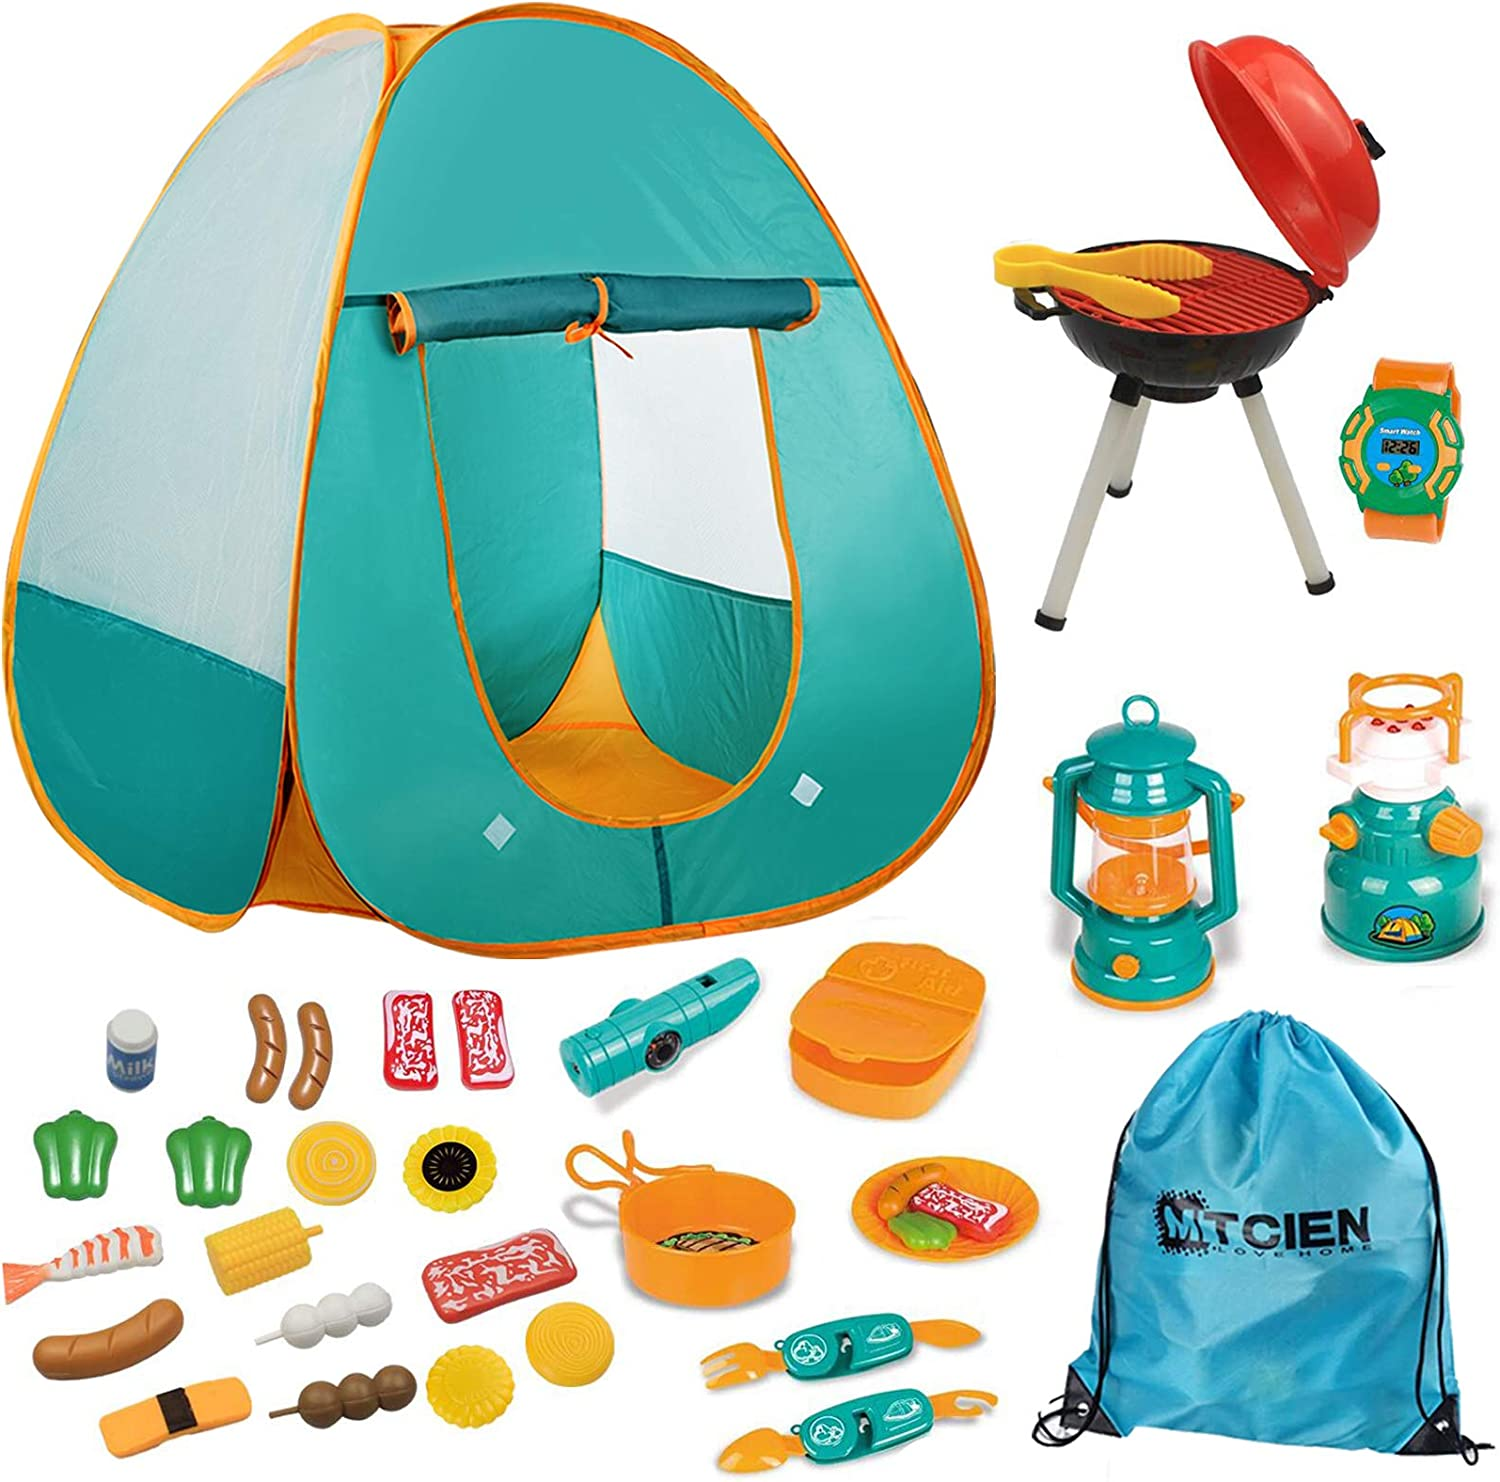 Amazon Com Mitcien Kids Camping Tent Gear Set Pop Up Play Tent With Pretend Bbq Toys Camping Tools For Toddlers Boys Girls For Indoor And Outdoor Toys Games